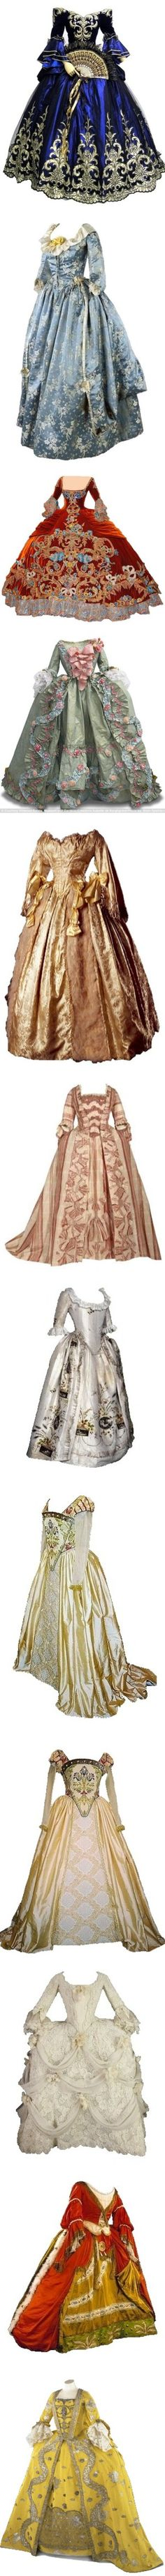 maria antoinettes masquerade gowns by missherjh on Polyvore featuring dresses, gowns, long dress, historical, gown, medieval, costume, leilani, costumes and period clothes